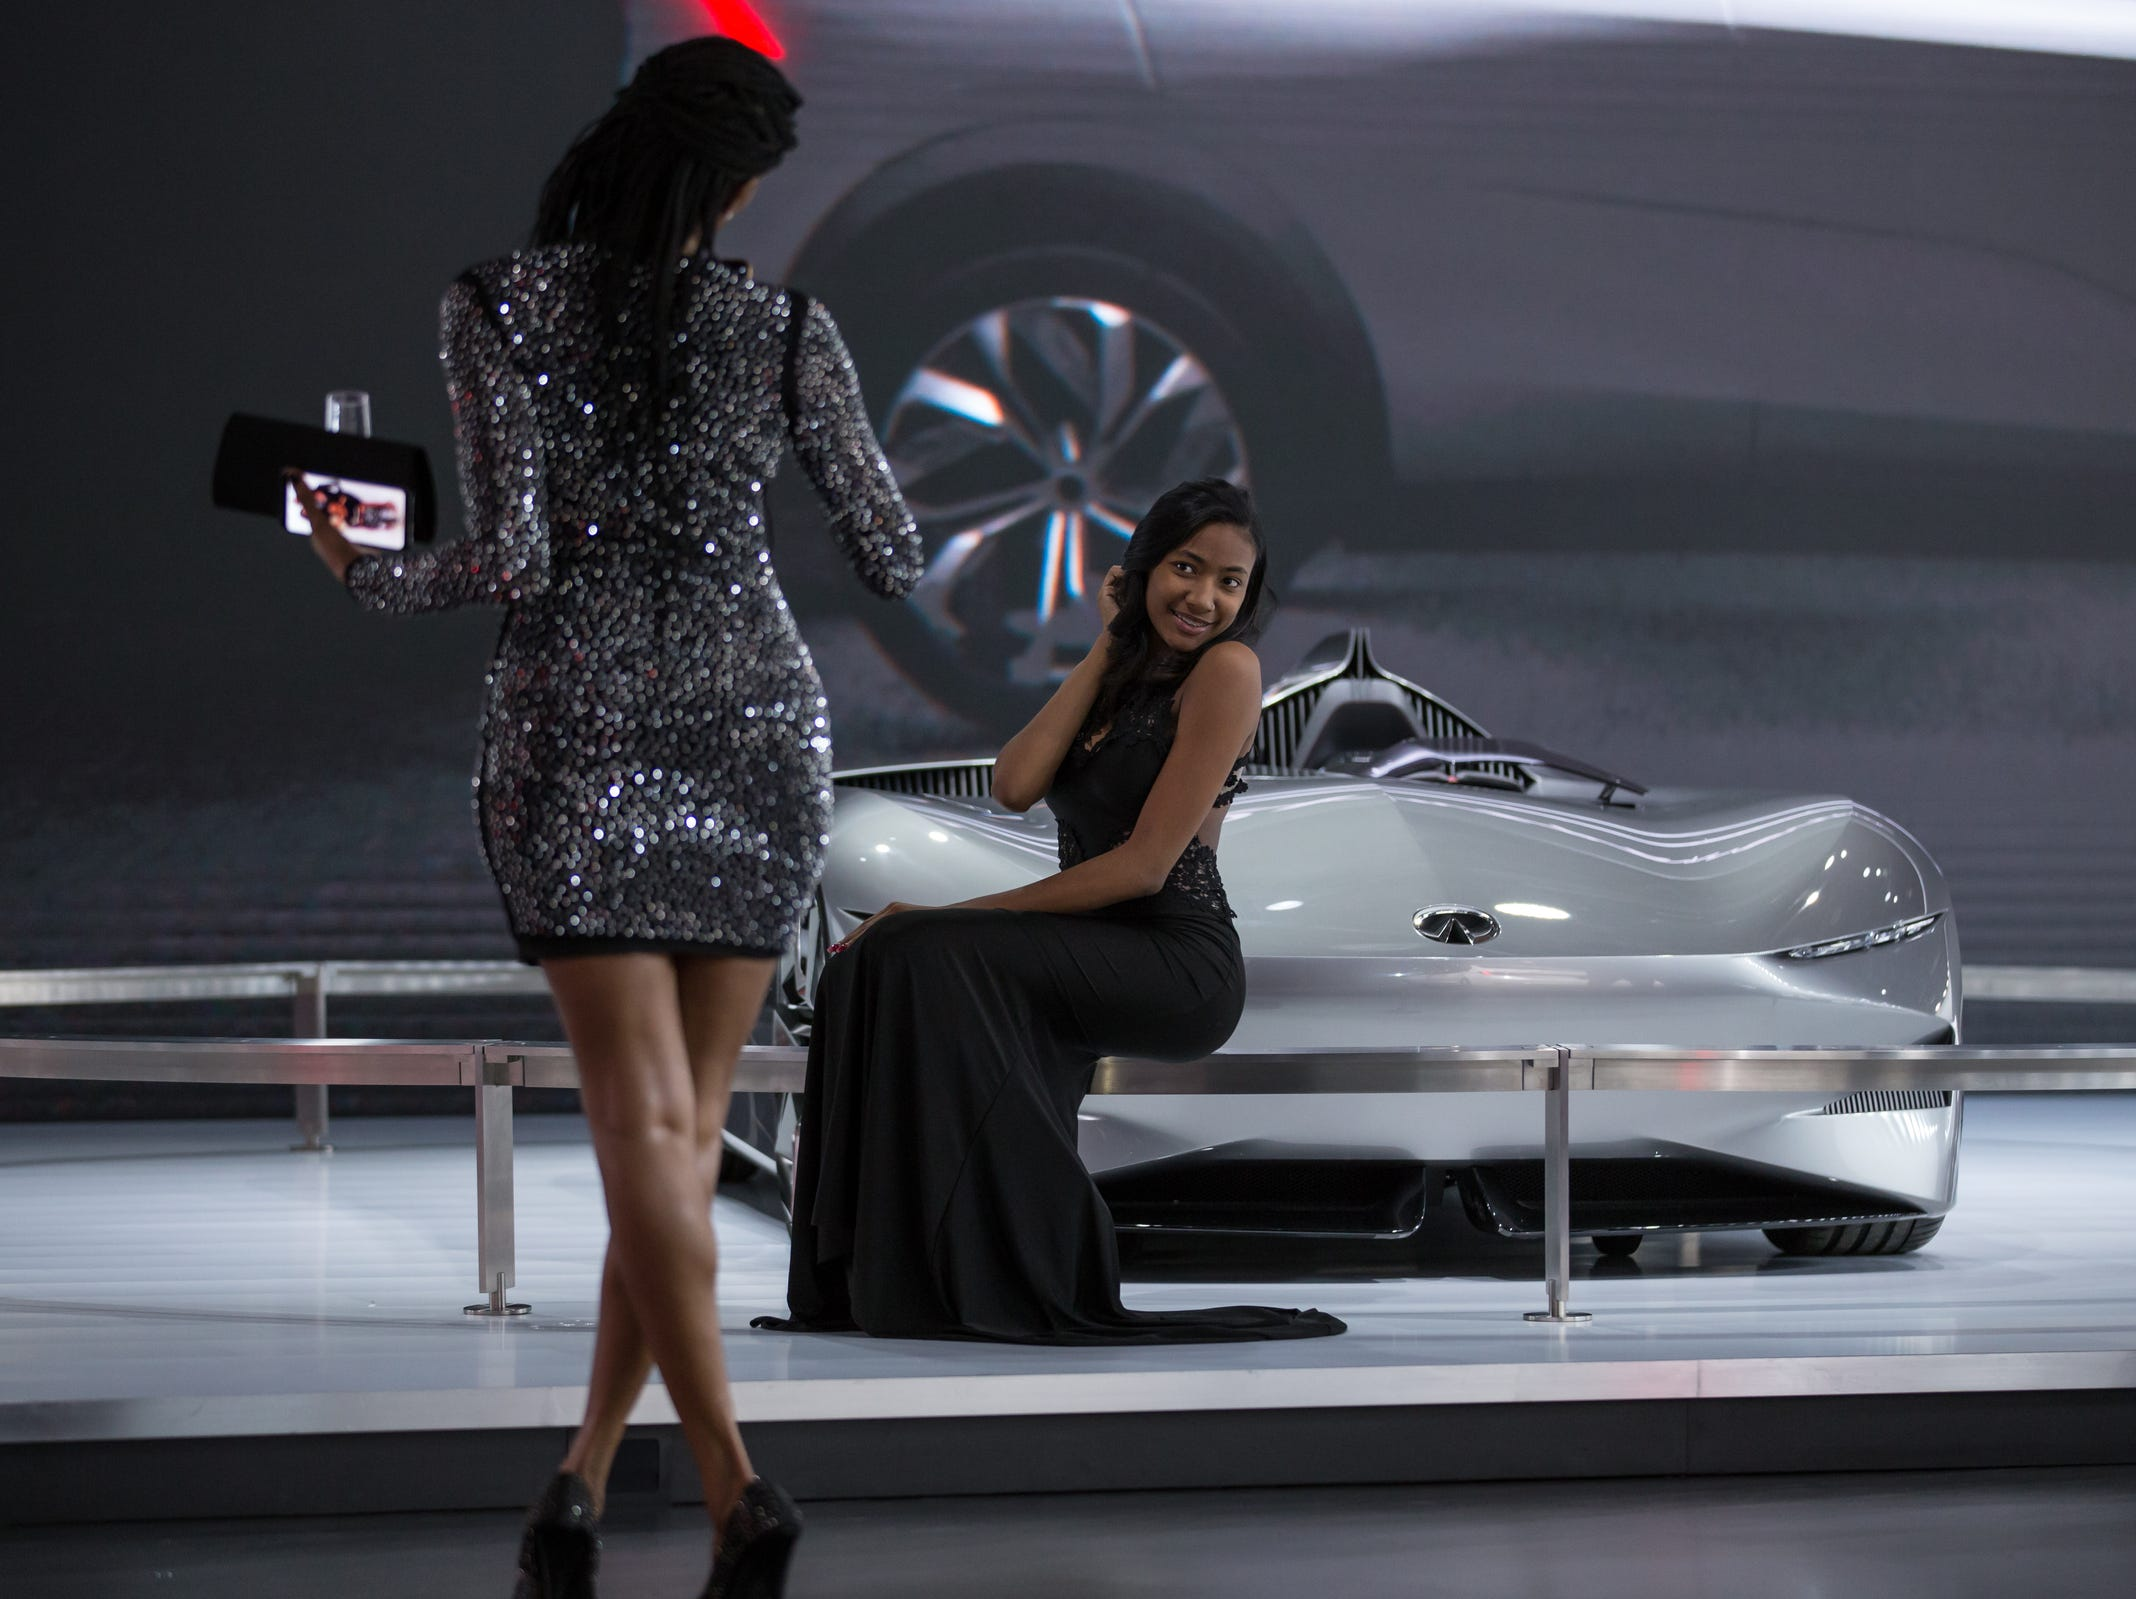 Sharon Freed-Moreland of Detroit takes a photo of her daughter Ellissa Freed next to the Infiniti Prototype 10 during the 2019 North American International Auto Show Charity Preview at Cobo Center in Detroit on Friday, January 18, 2019.